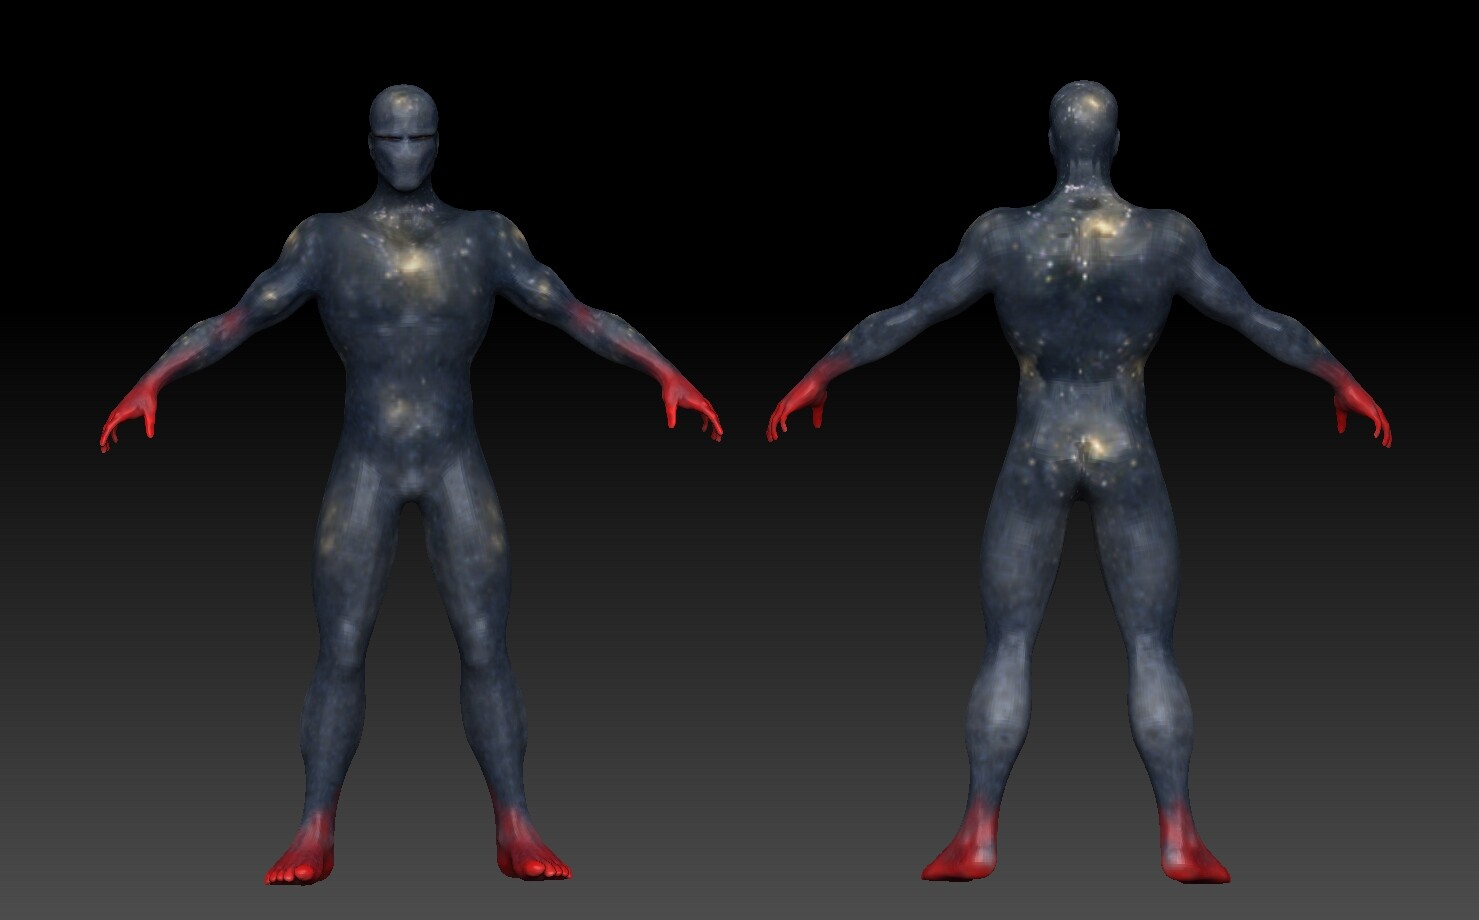 uv-mapping & texture test